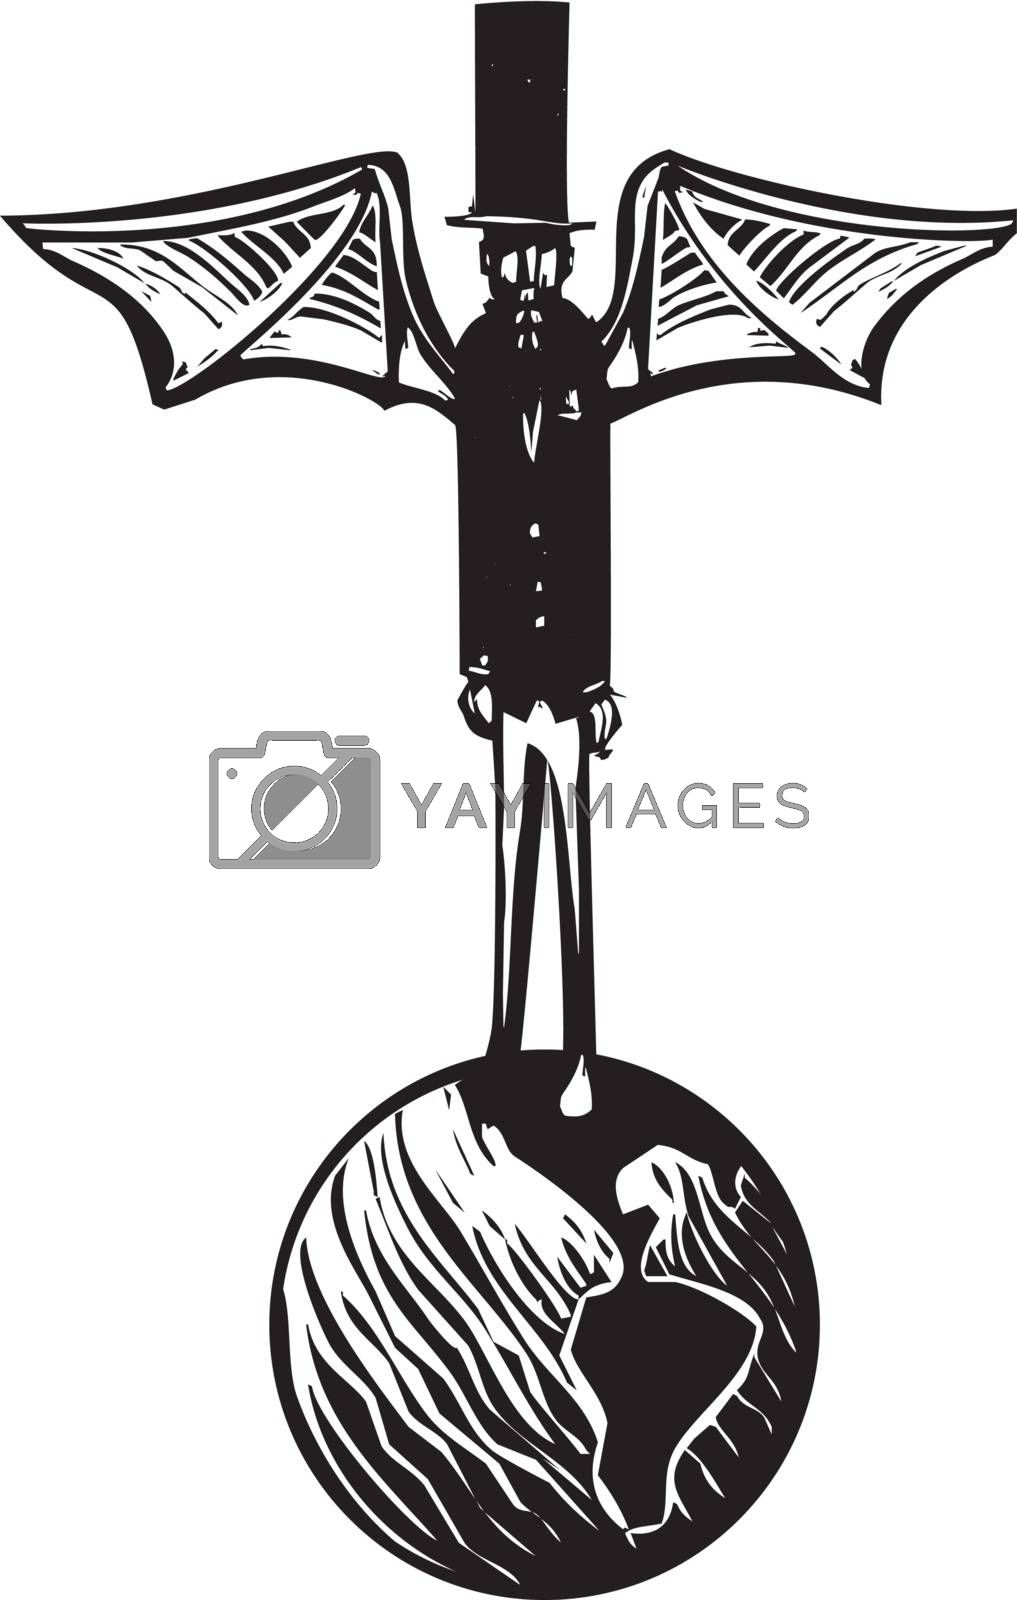 Woodcut style Victorian dressed demon with wings and a top hat standing on the earth.